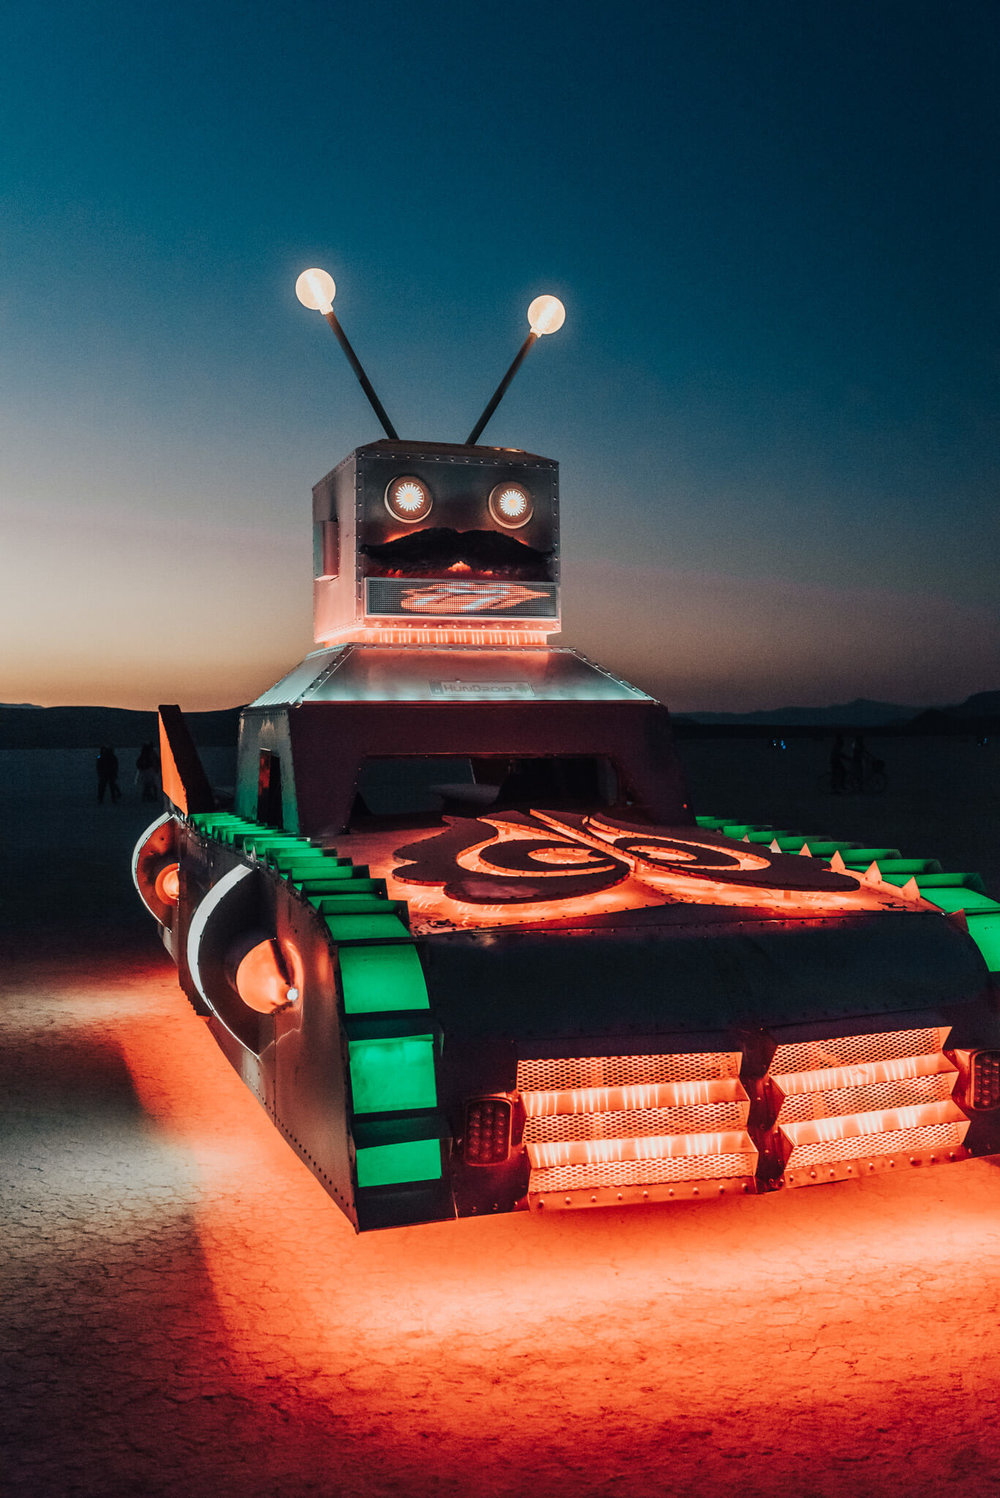 robot car burning man 2018